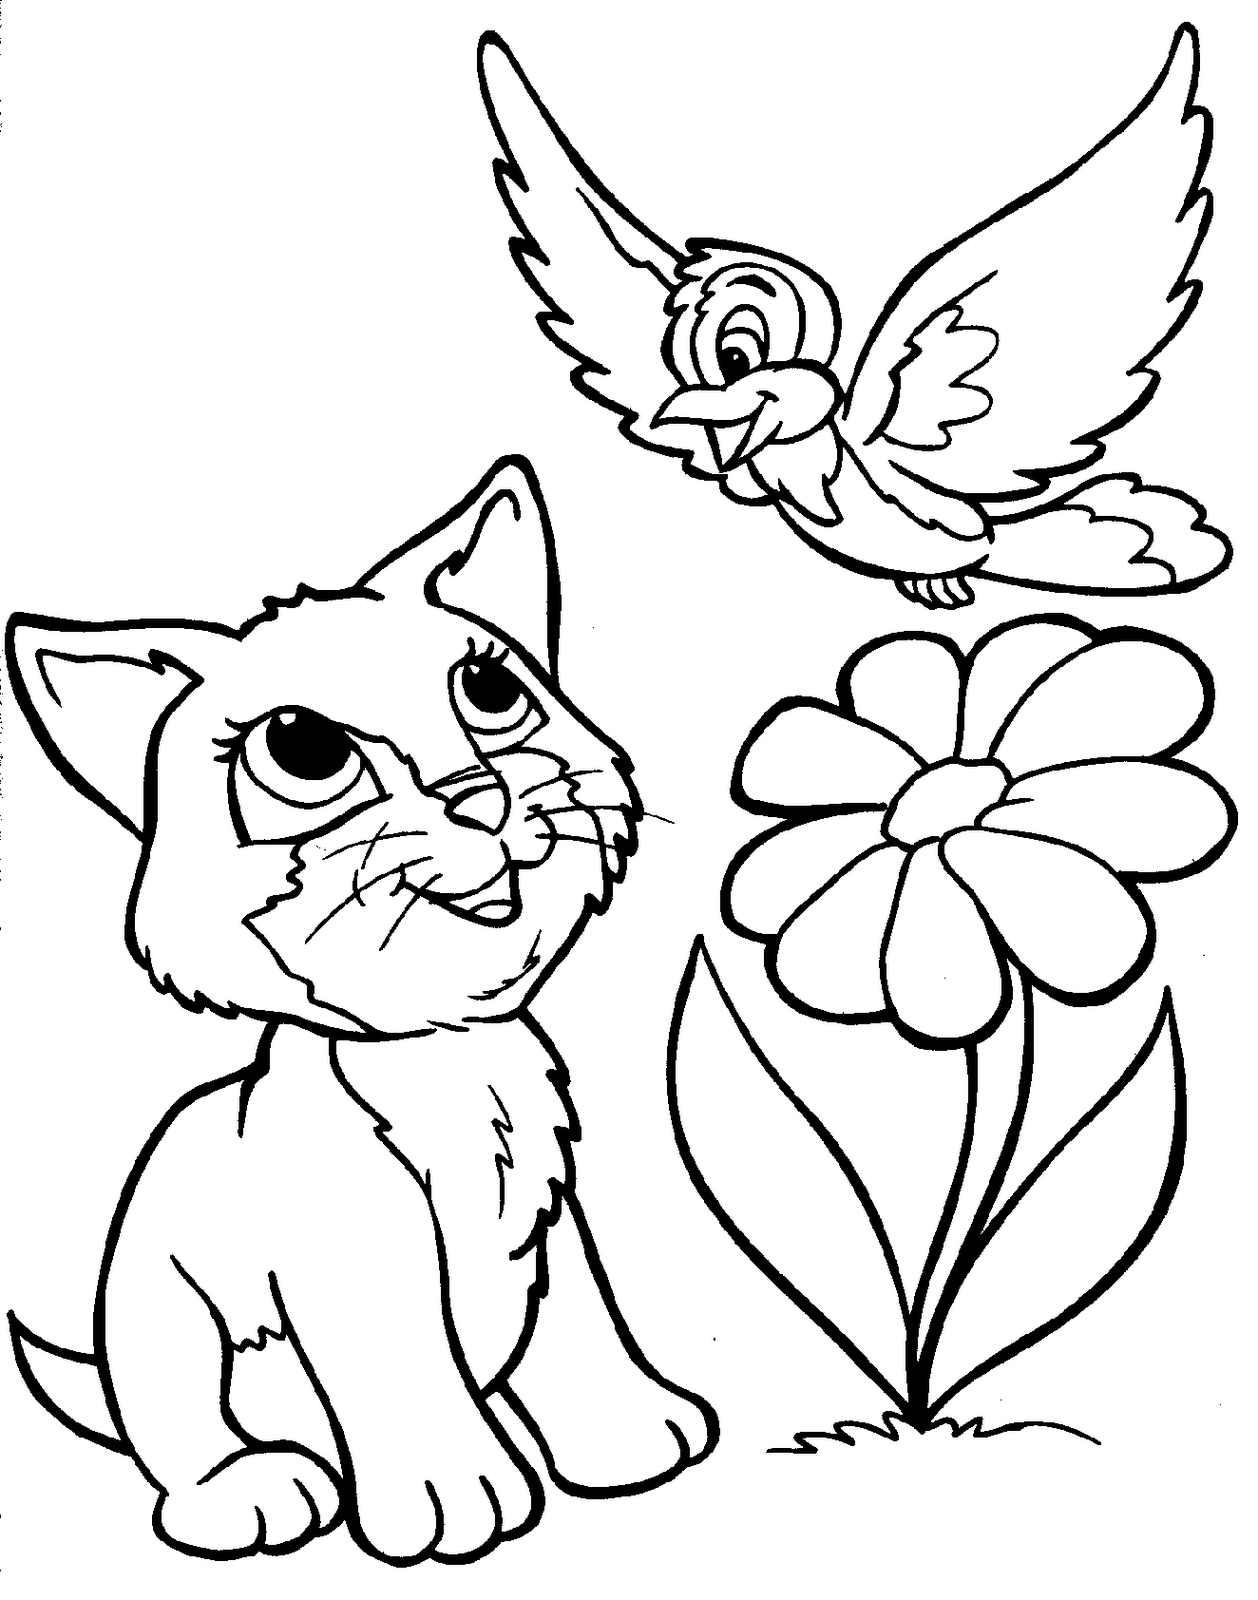 free printable animal colouring pages adult coloring pages animals best coloring pages for kids printable free colouring pages animal